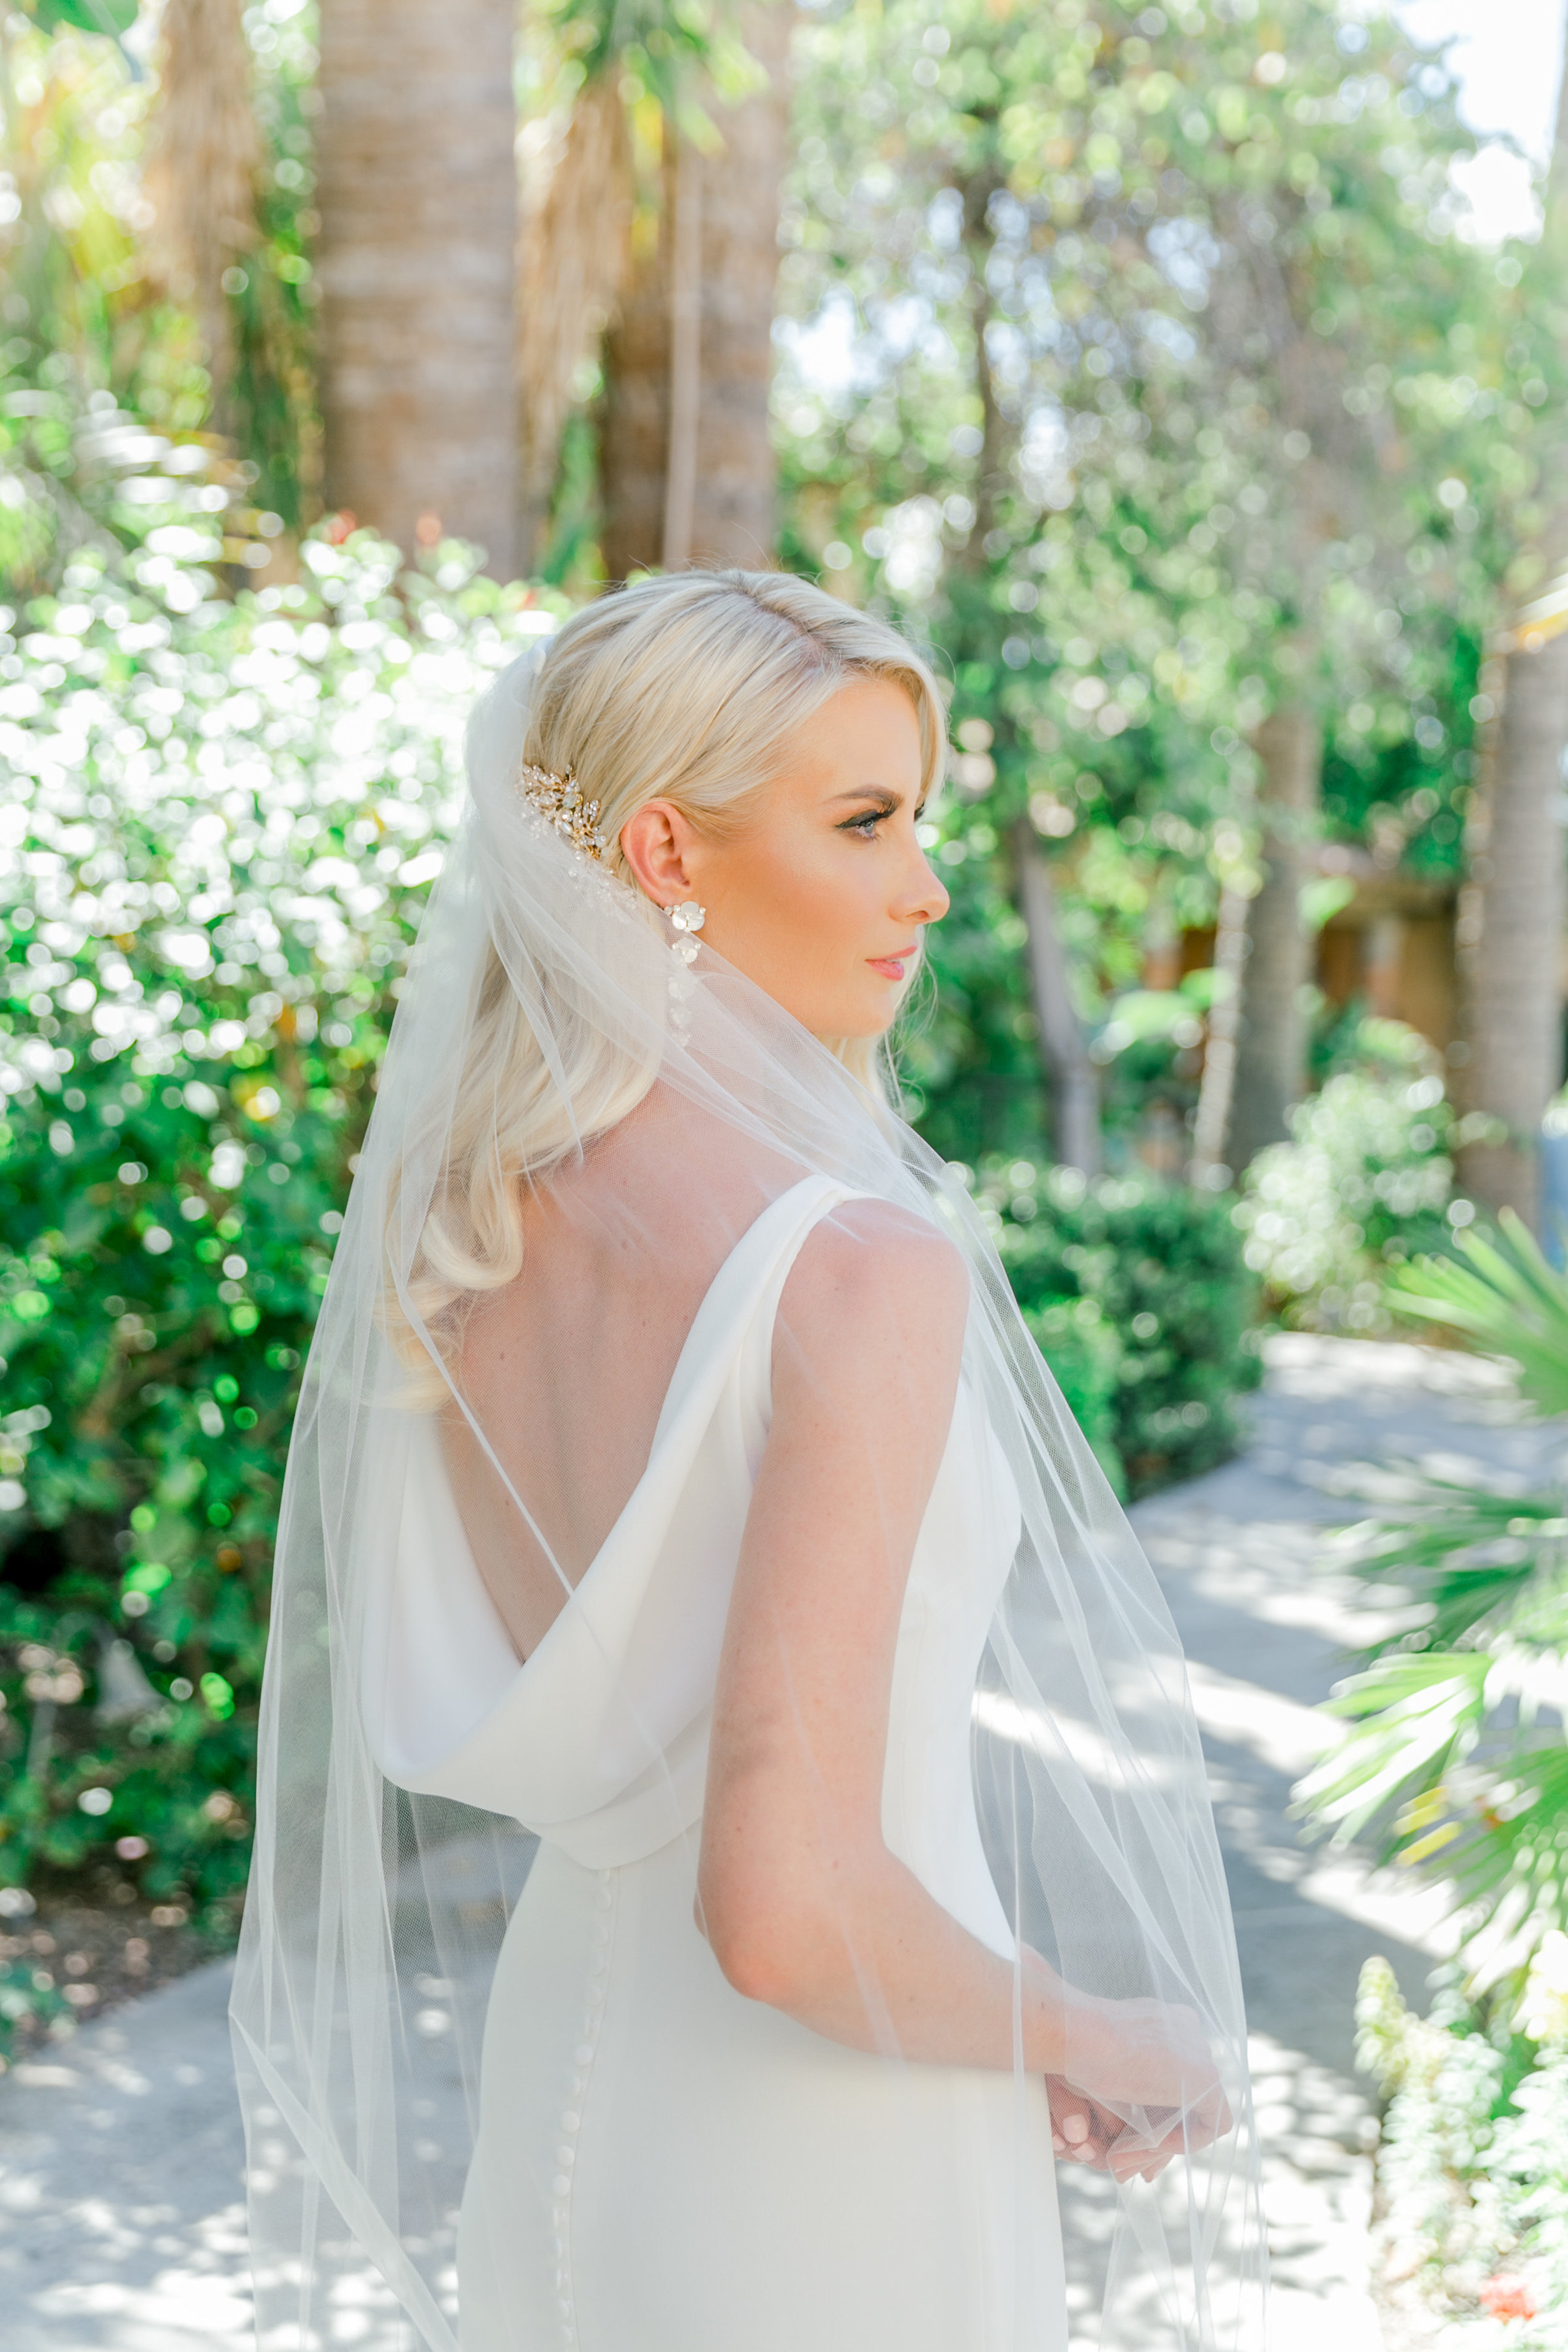 Karlie Colleen Photography - Arizona Wedding - Royal Palms Resort- Alex & Alex-48